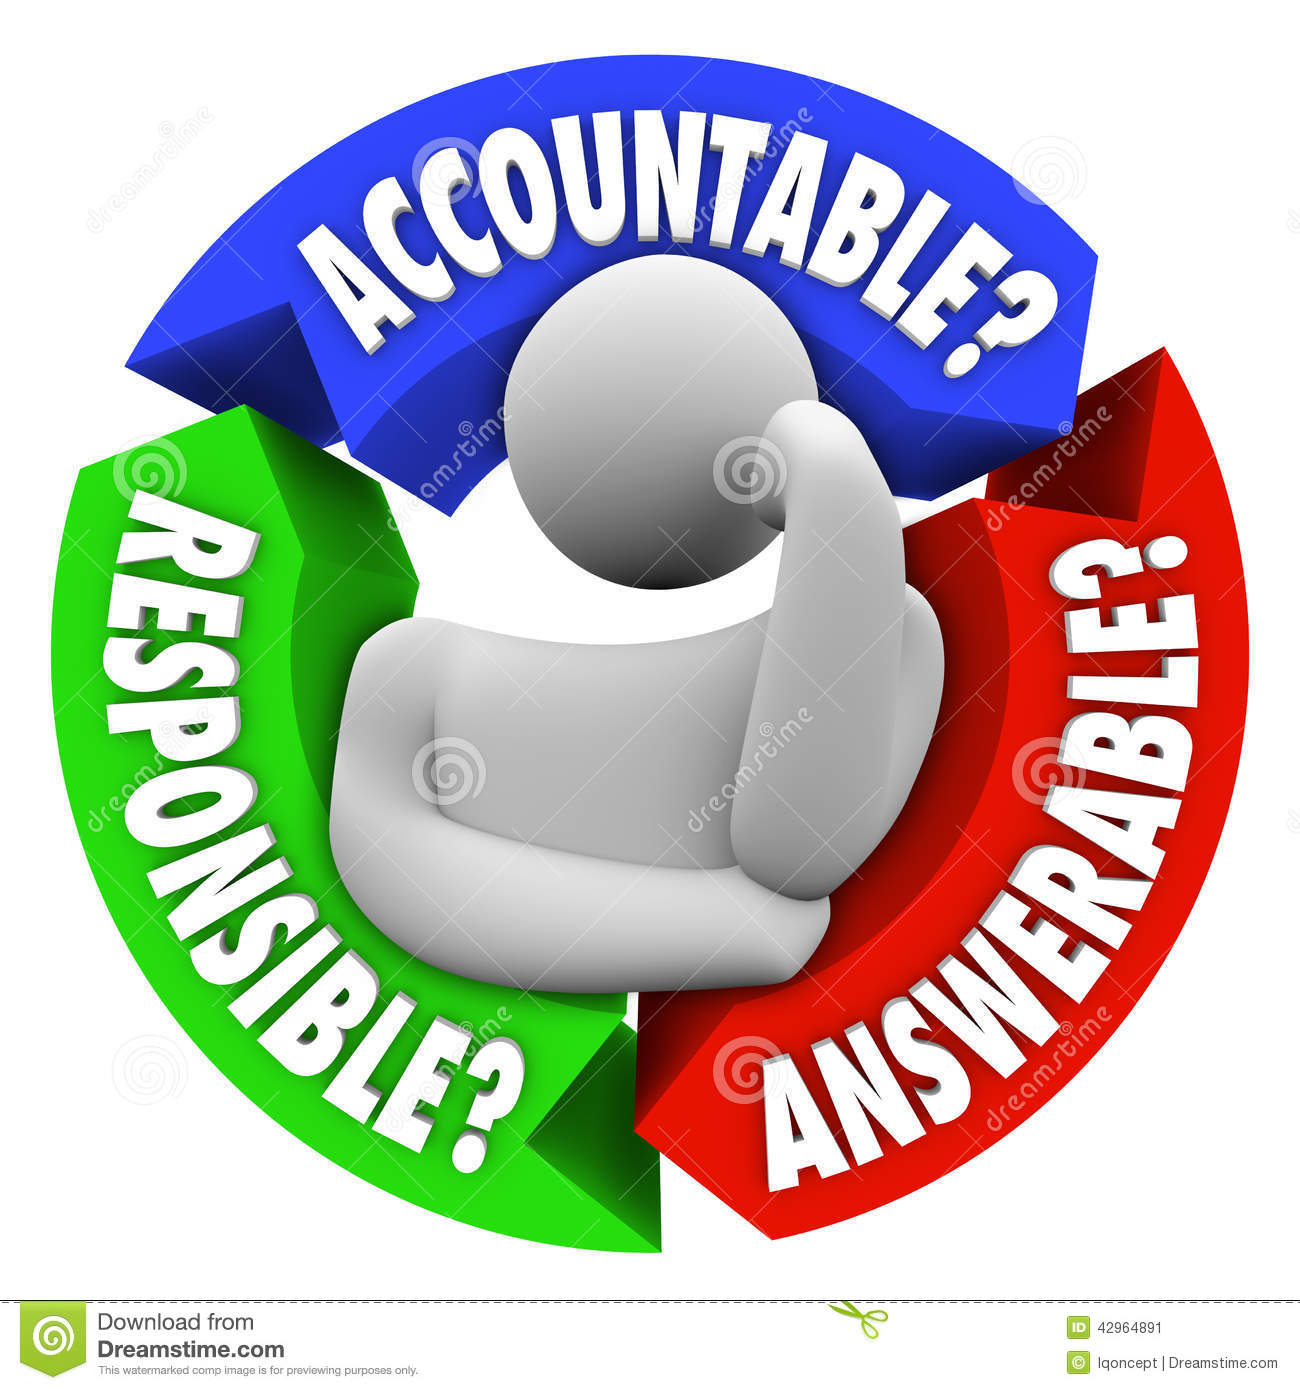 how to be responsible We are all responsible already for everything we do when we try to give responsibility away all we actually do is surrender control.